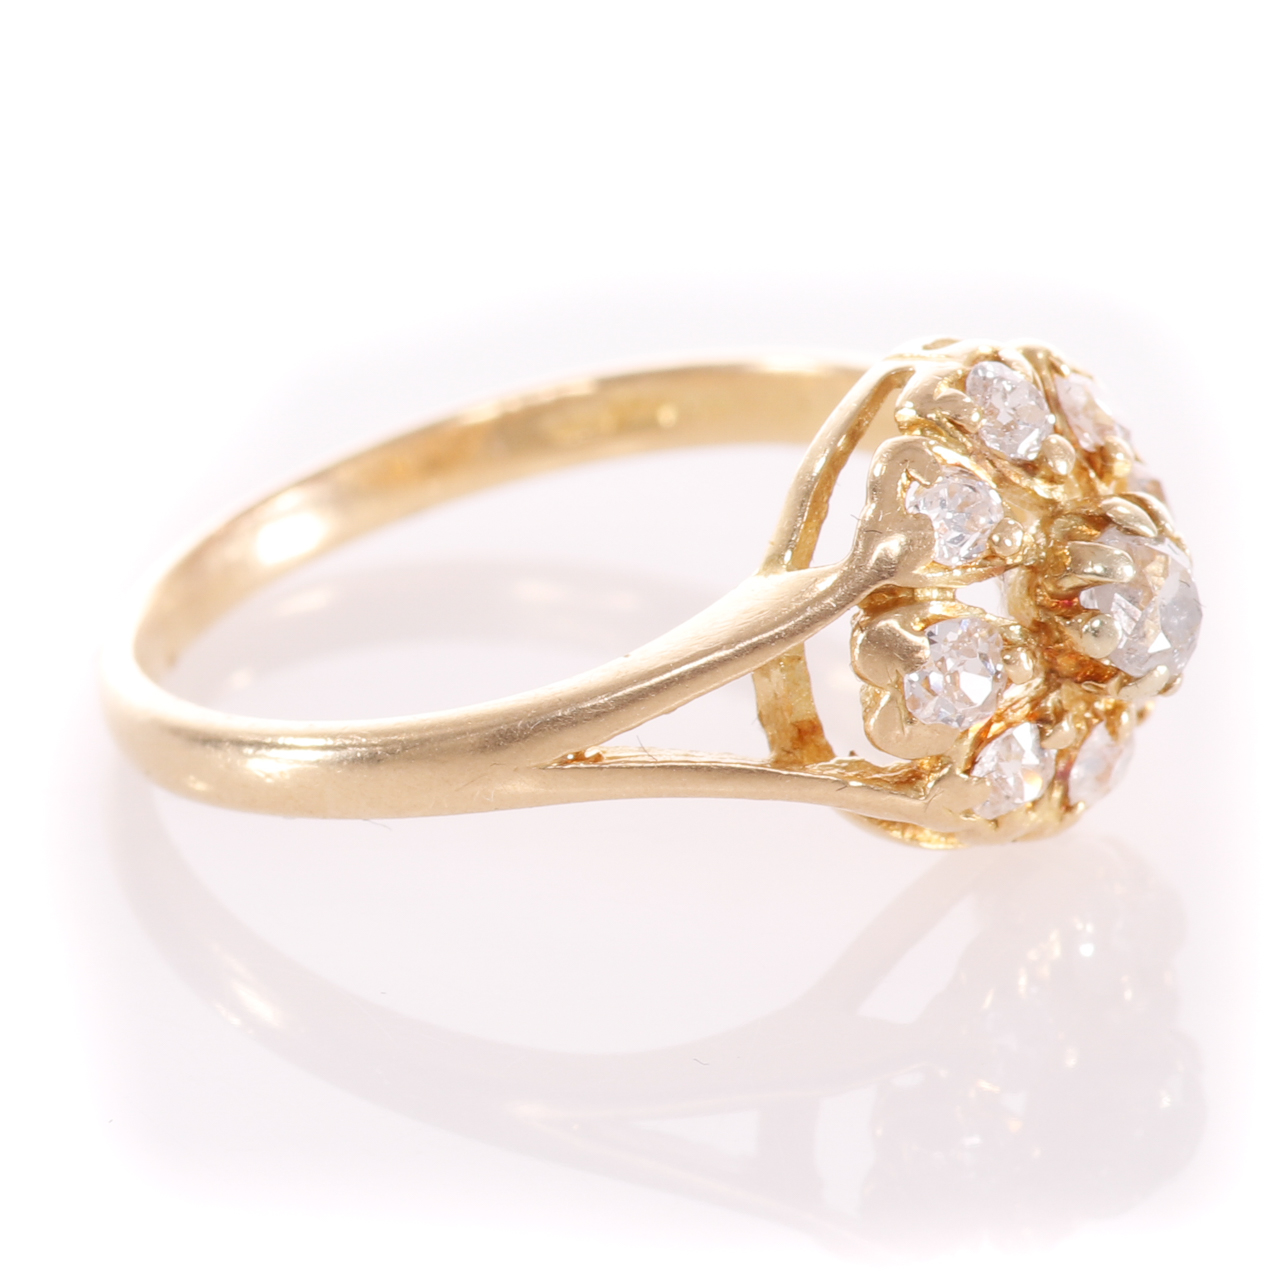 18ct Gold Rose Cut 0.35ct Diamond Cluster Ring - Image 8 of 8